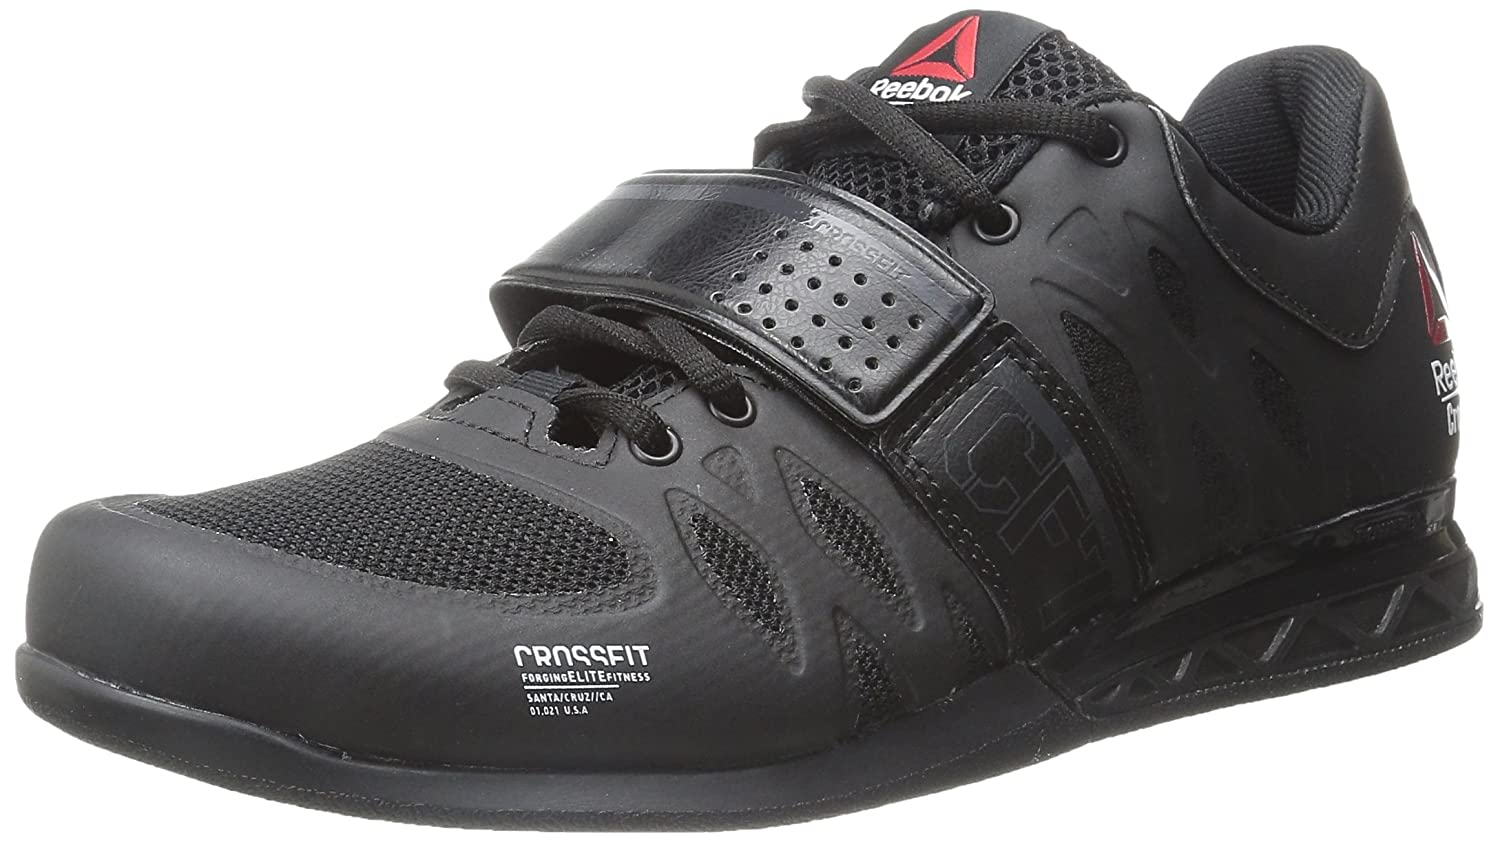 Best Oly Shoes For Crossfit